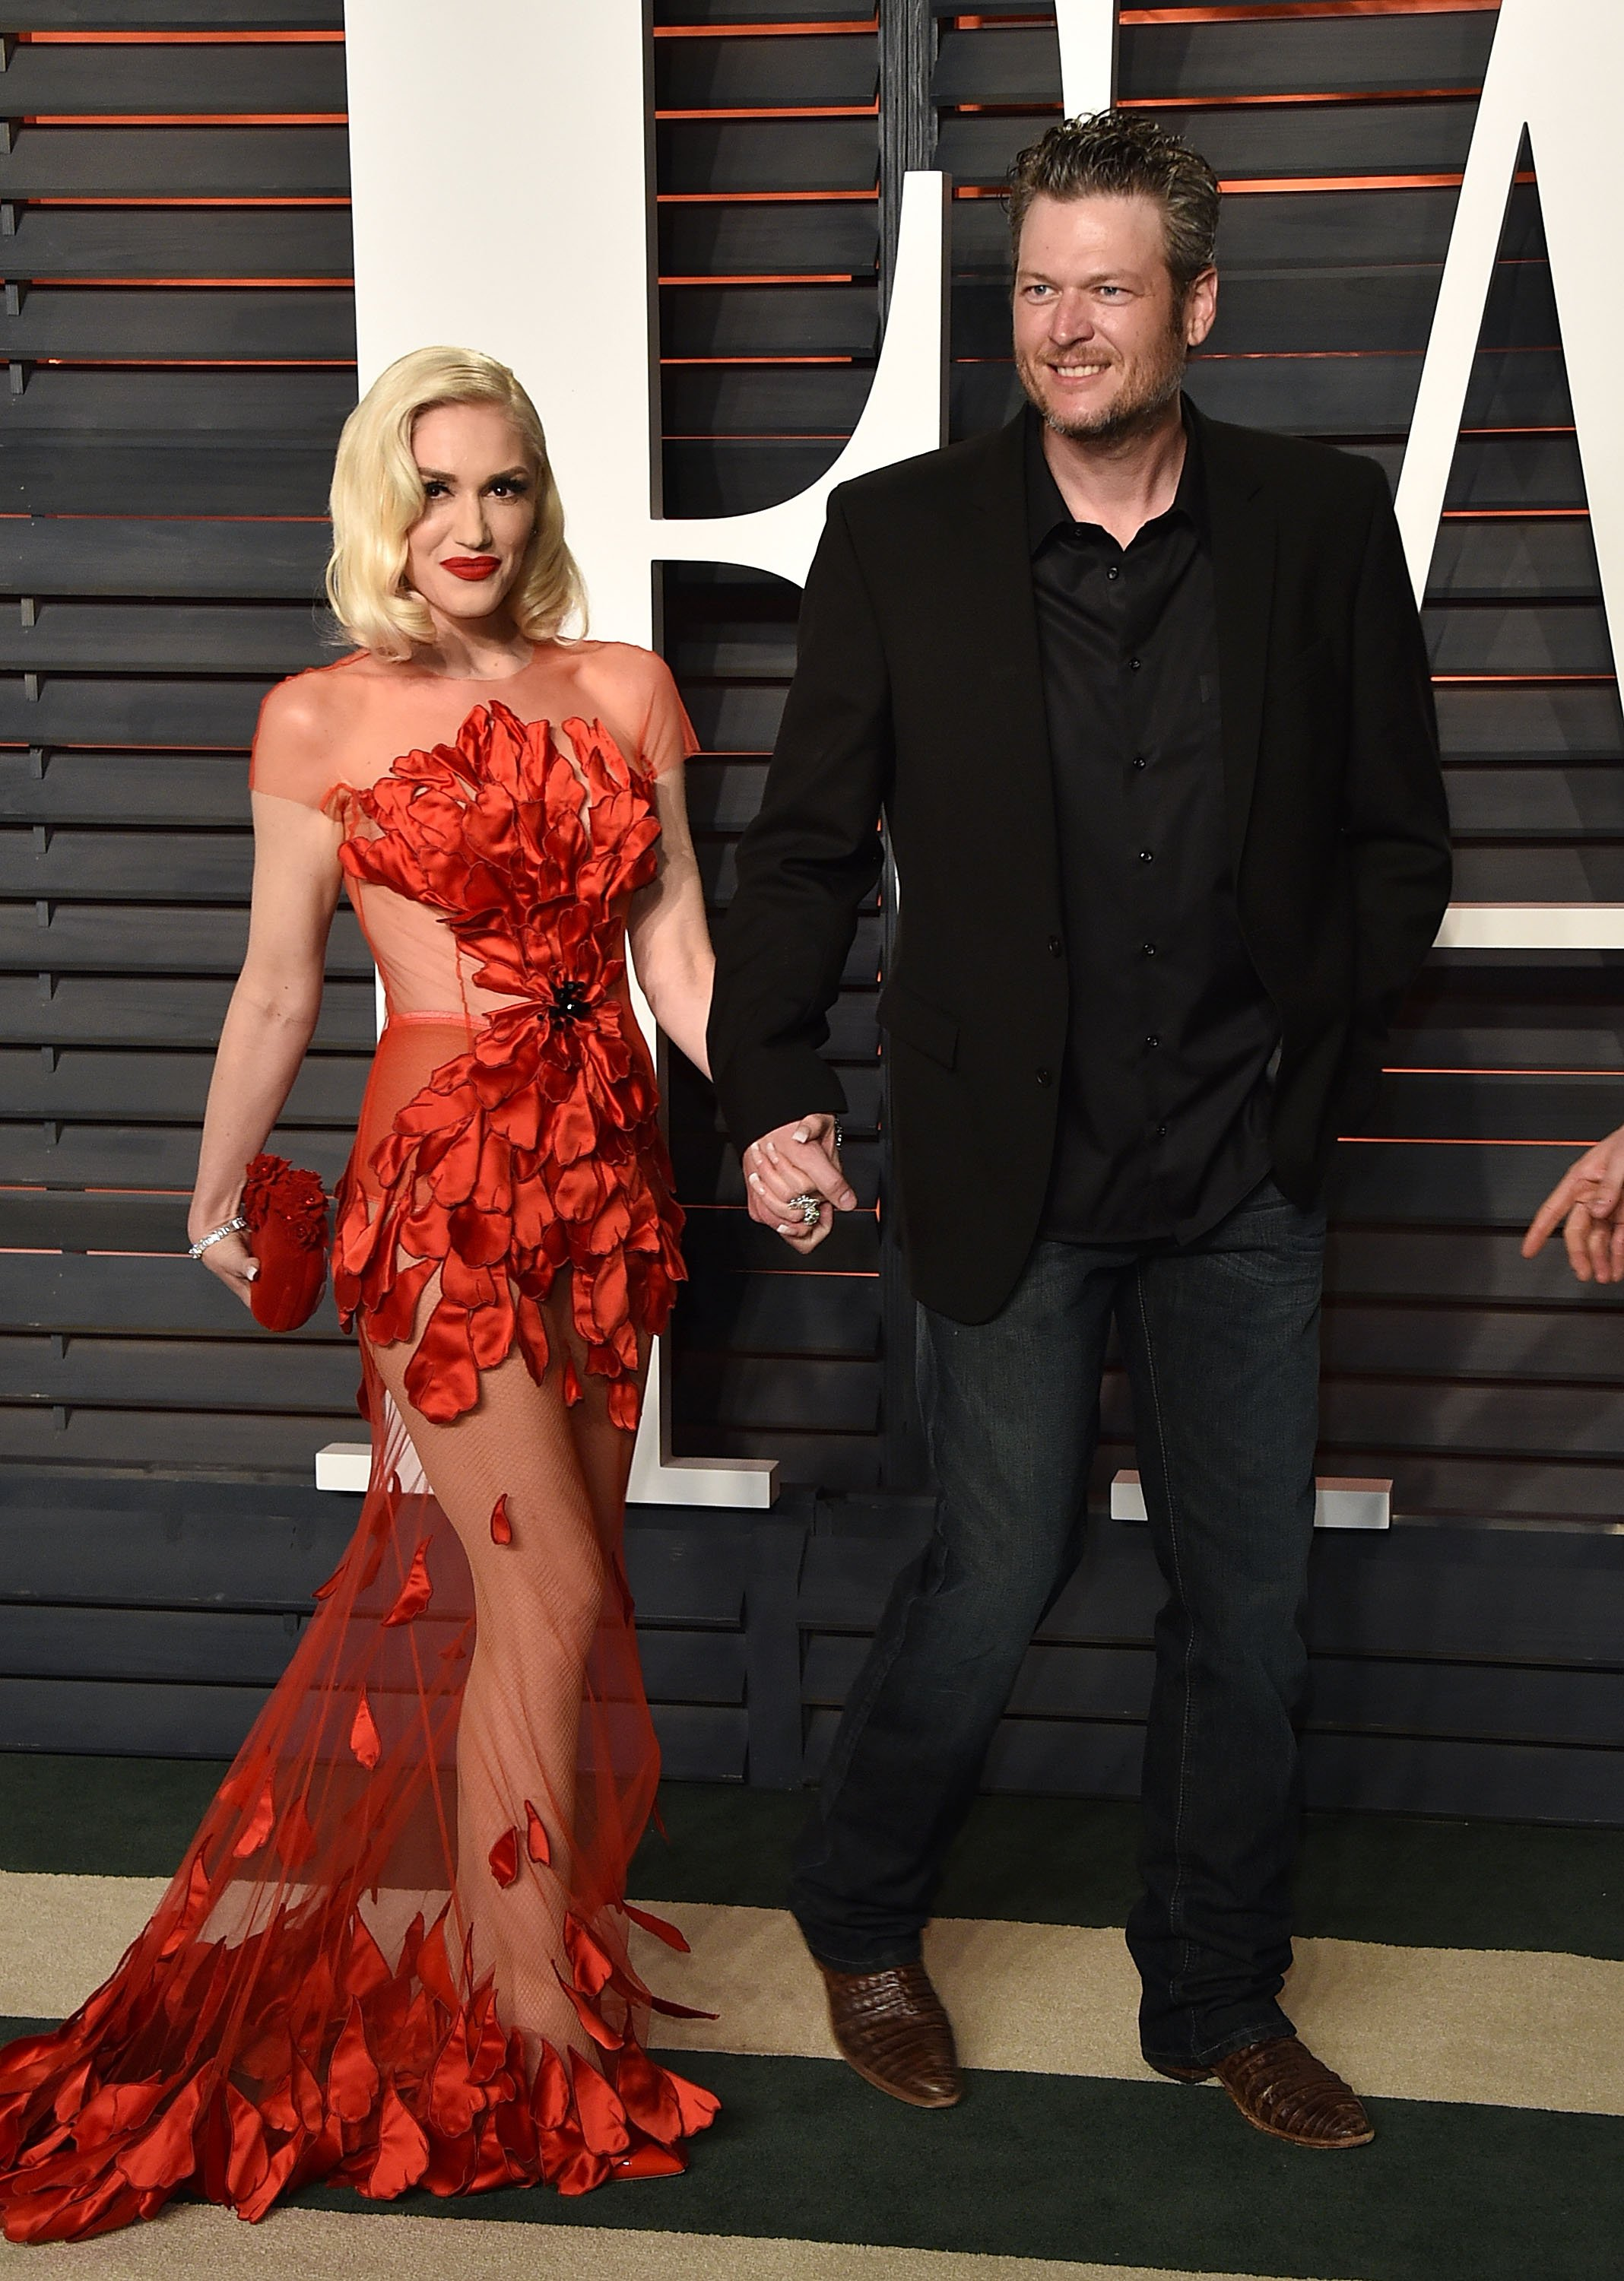 Gwen Stefani and Blake Shelton at the 2016 Vanity Fair Oscar Party on February 28, 2016 in Beverly Hills, California | Source: Getty Images